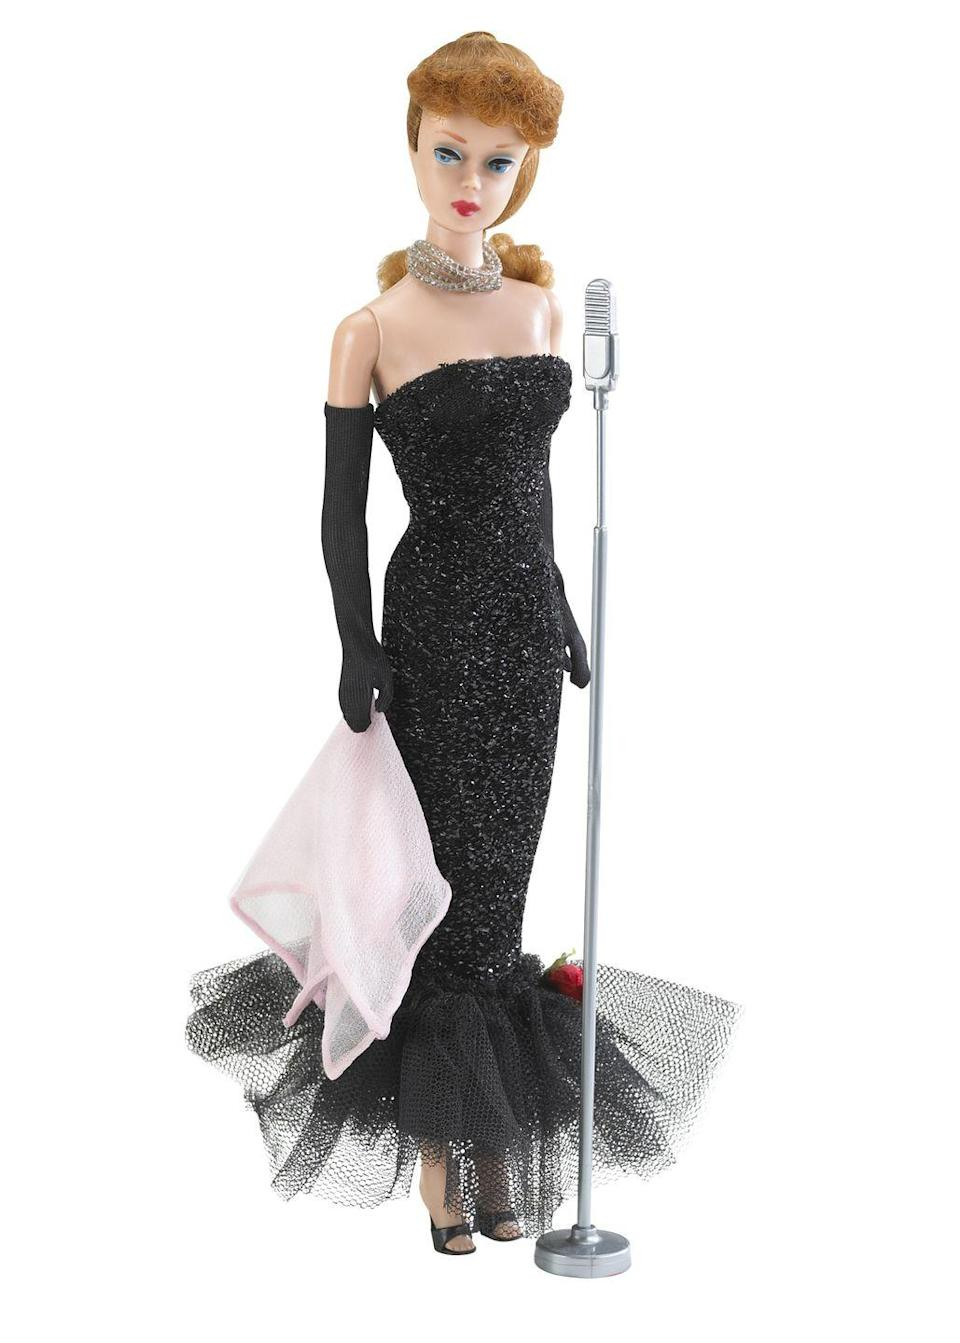 "<p>With her strapless black dress and long gloves, Barbie Solo In The Spotlight becomes one of the more glamorous dolls ever. </p><p><a href=""http://www.goodhousekeeping.com/life/g2530/barbie-dolls-history-facts/"" rel=""nofollow noopener"" target=""_blank"" data-ylk=""slk:18 things you didn't know about Barbie »"" class=""link rapid-noclick-resp""><em>18 things you didn't know about Barbie »</em></a></p>"